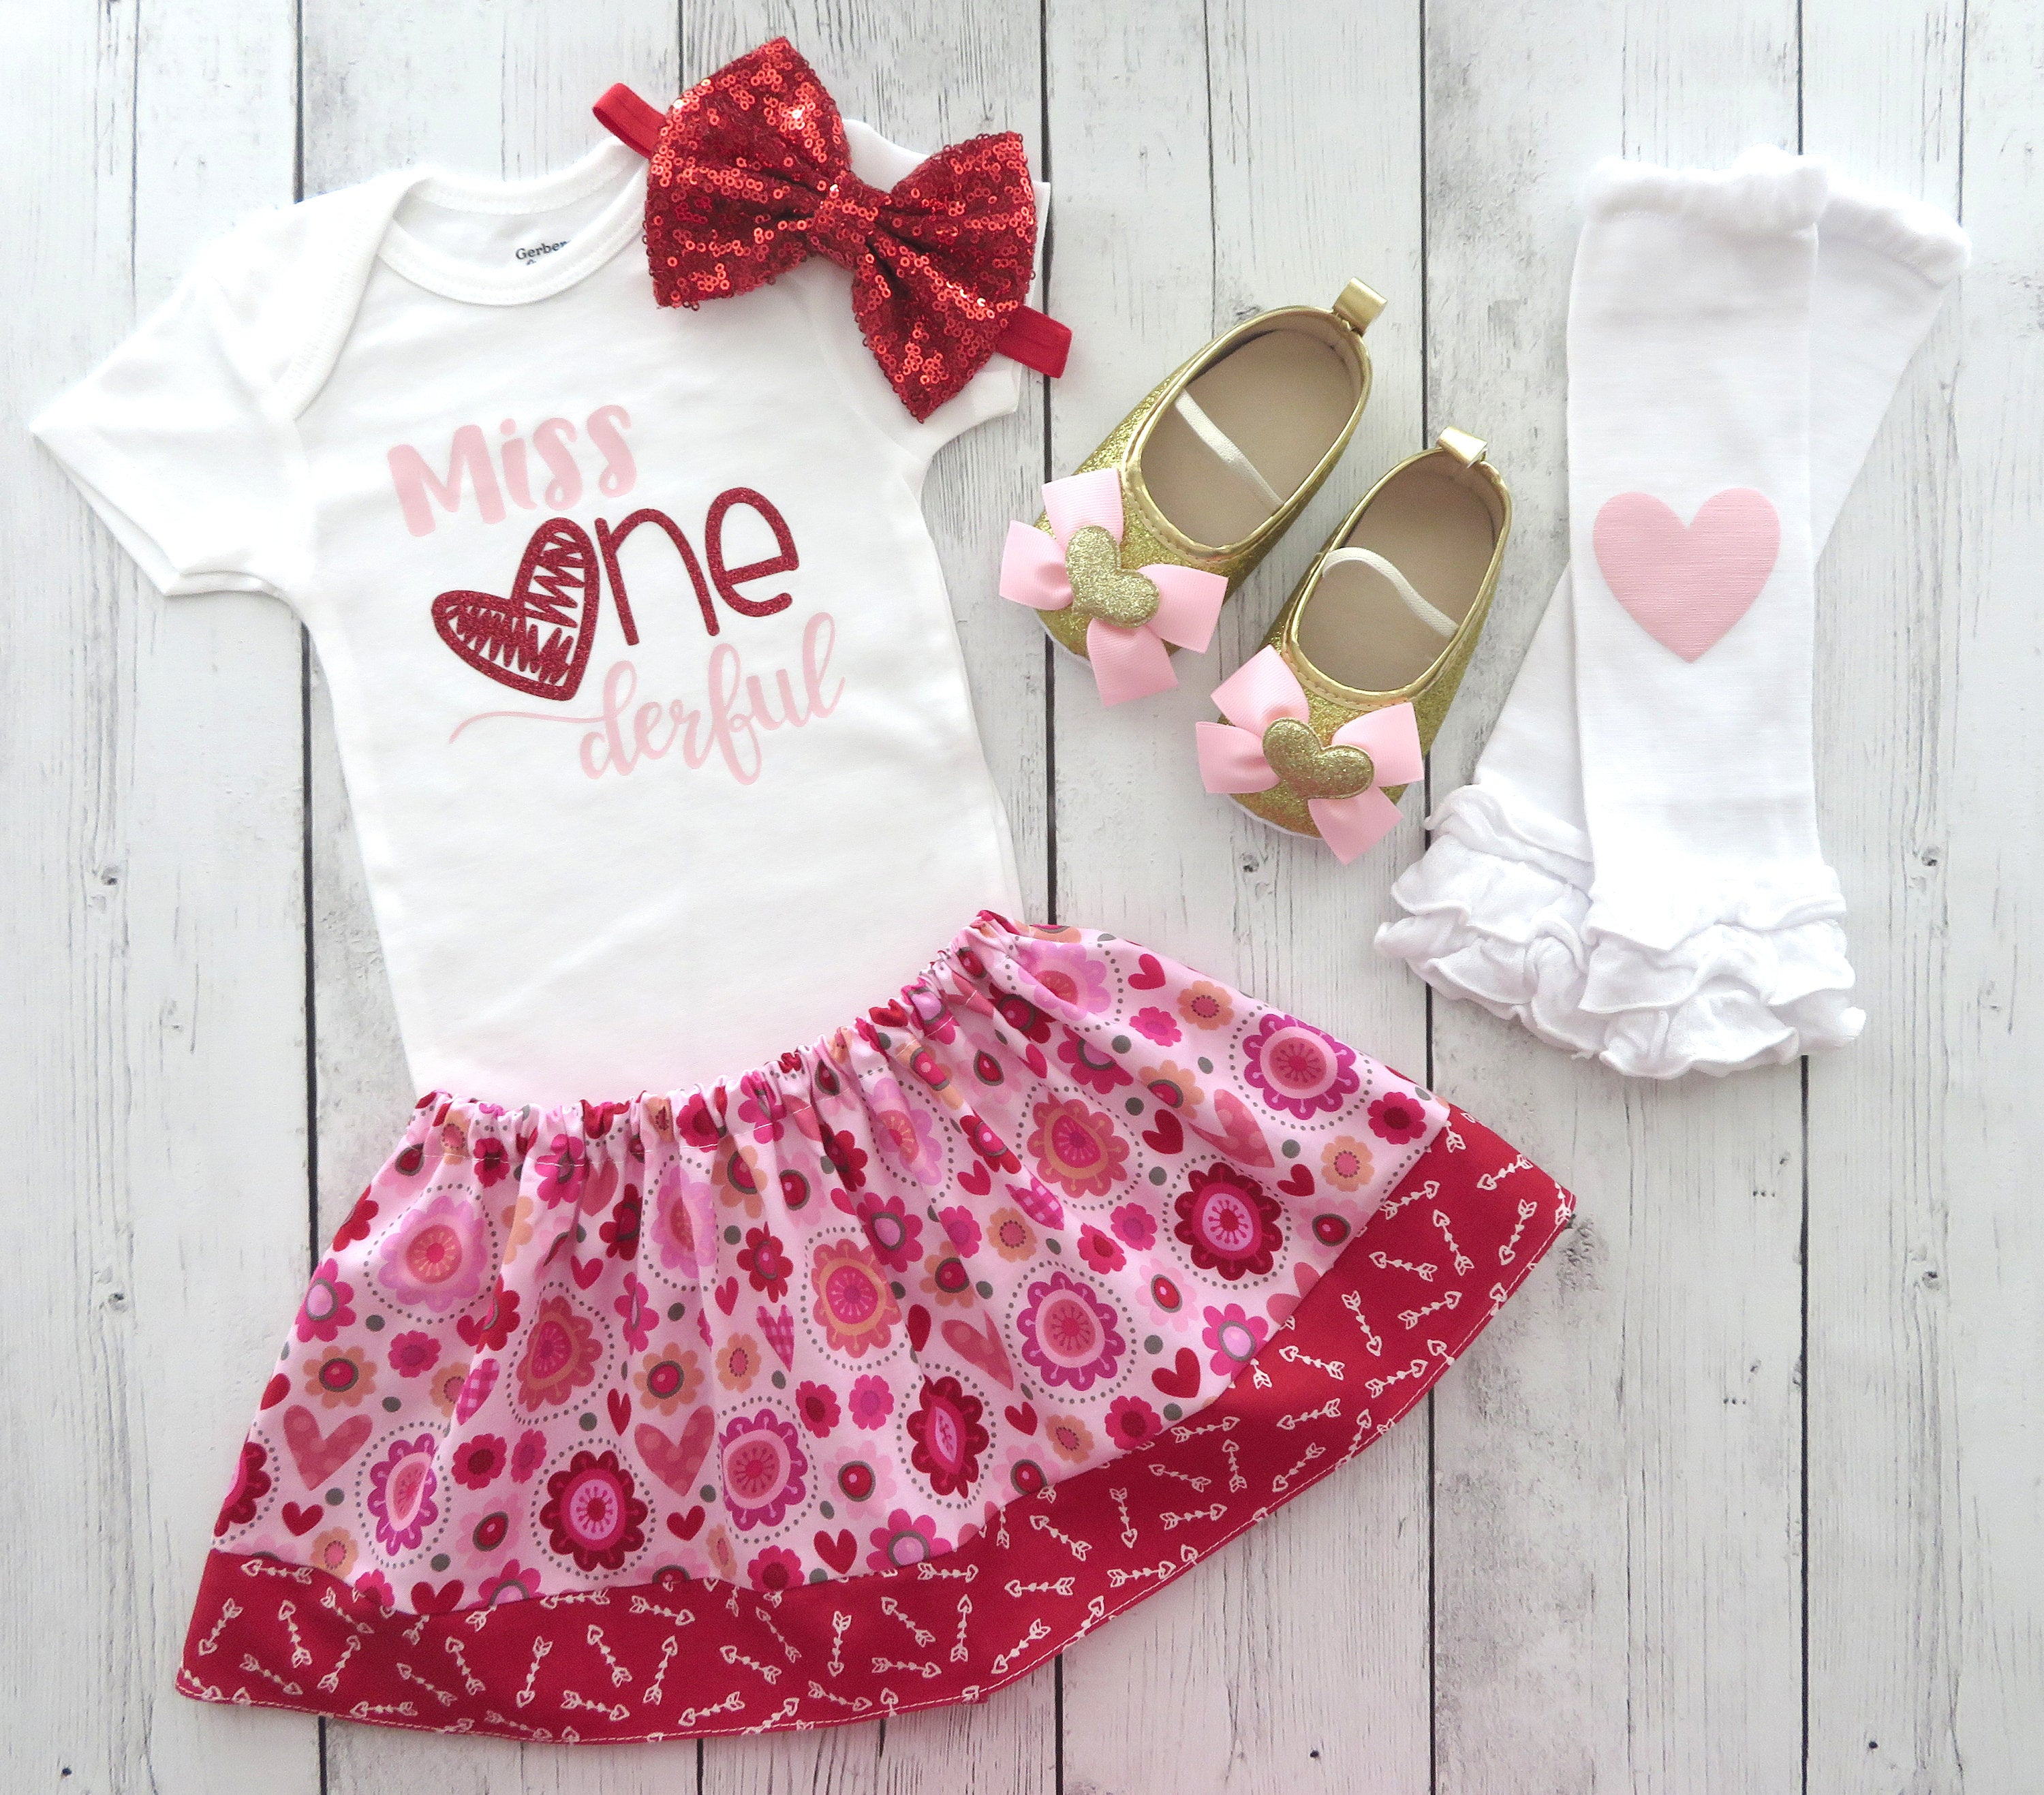 Pink and Red First Birthday Outfit - miss ONEderful, valentine's birthday, girl first birthday outfit, miss onederful, valentine birthday